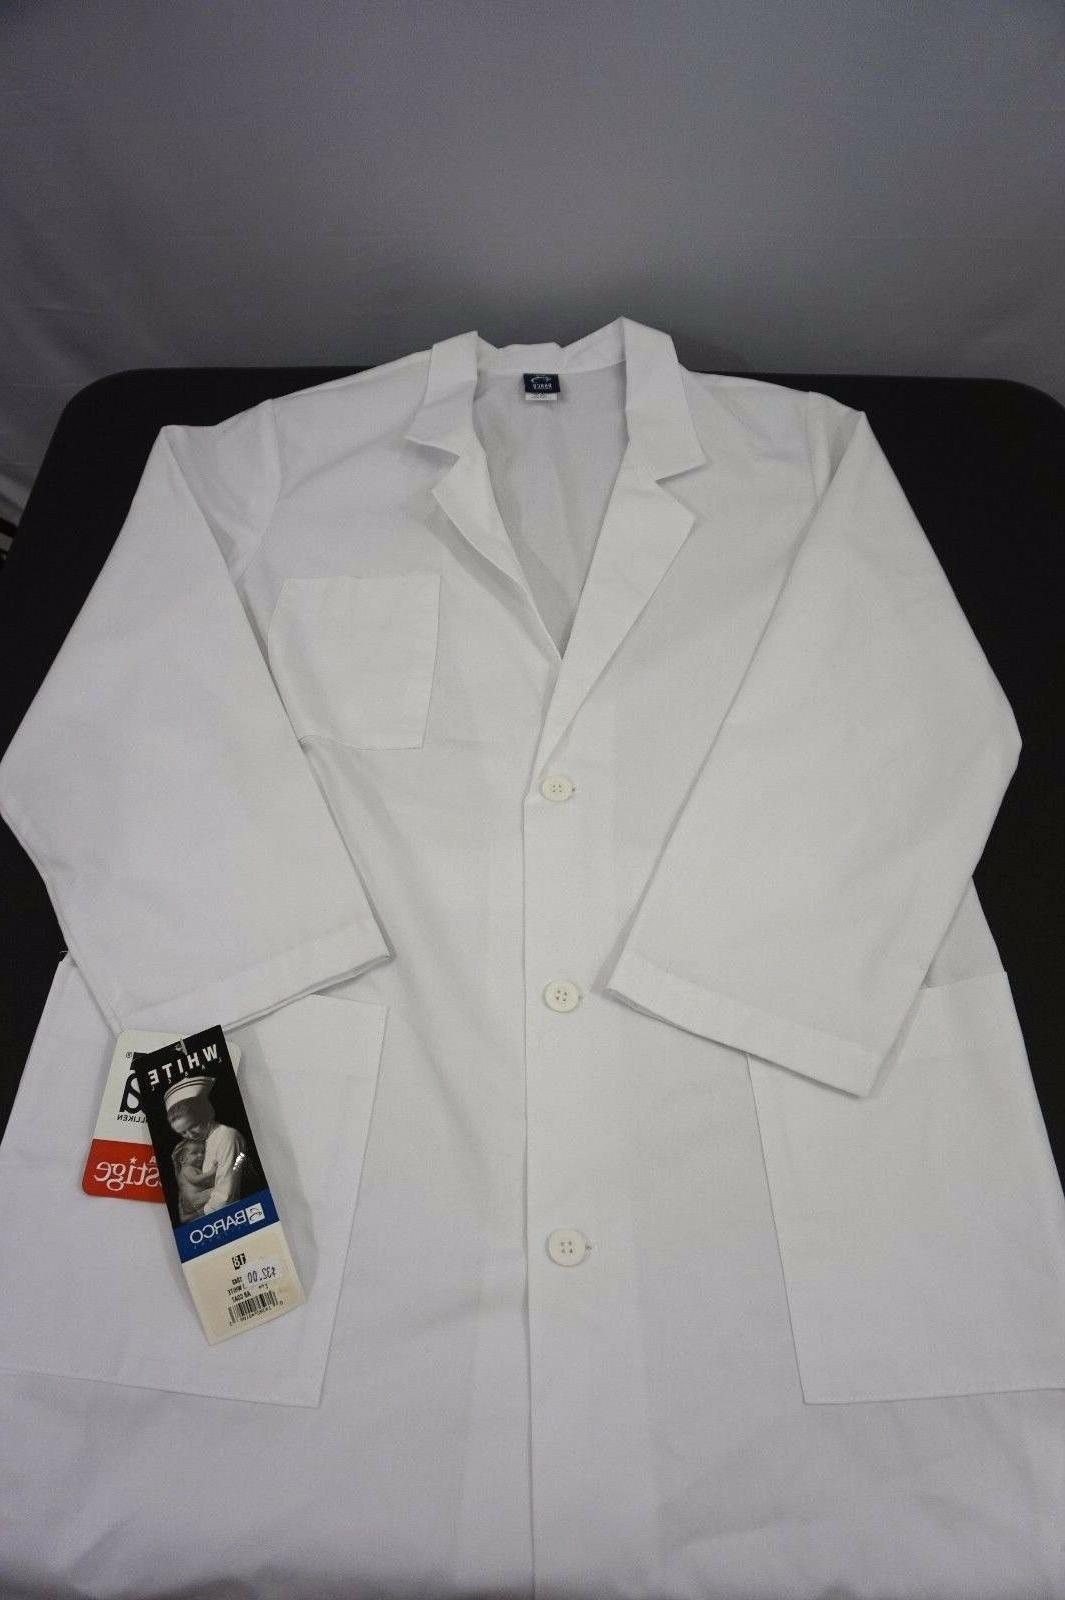 Lab Coat White Barco 1343 Womens Sz 18 Knee Length Uniform